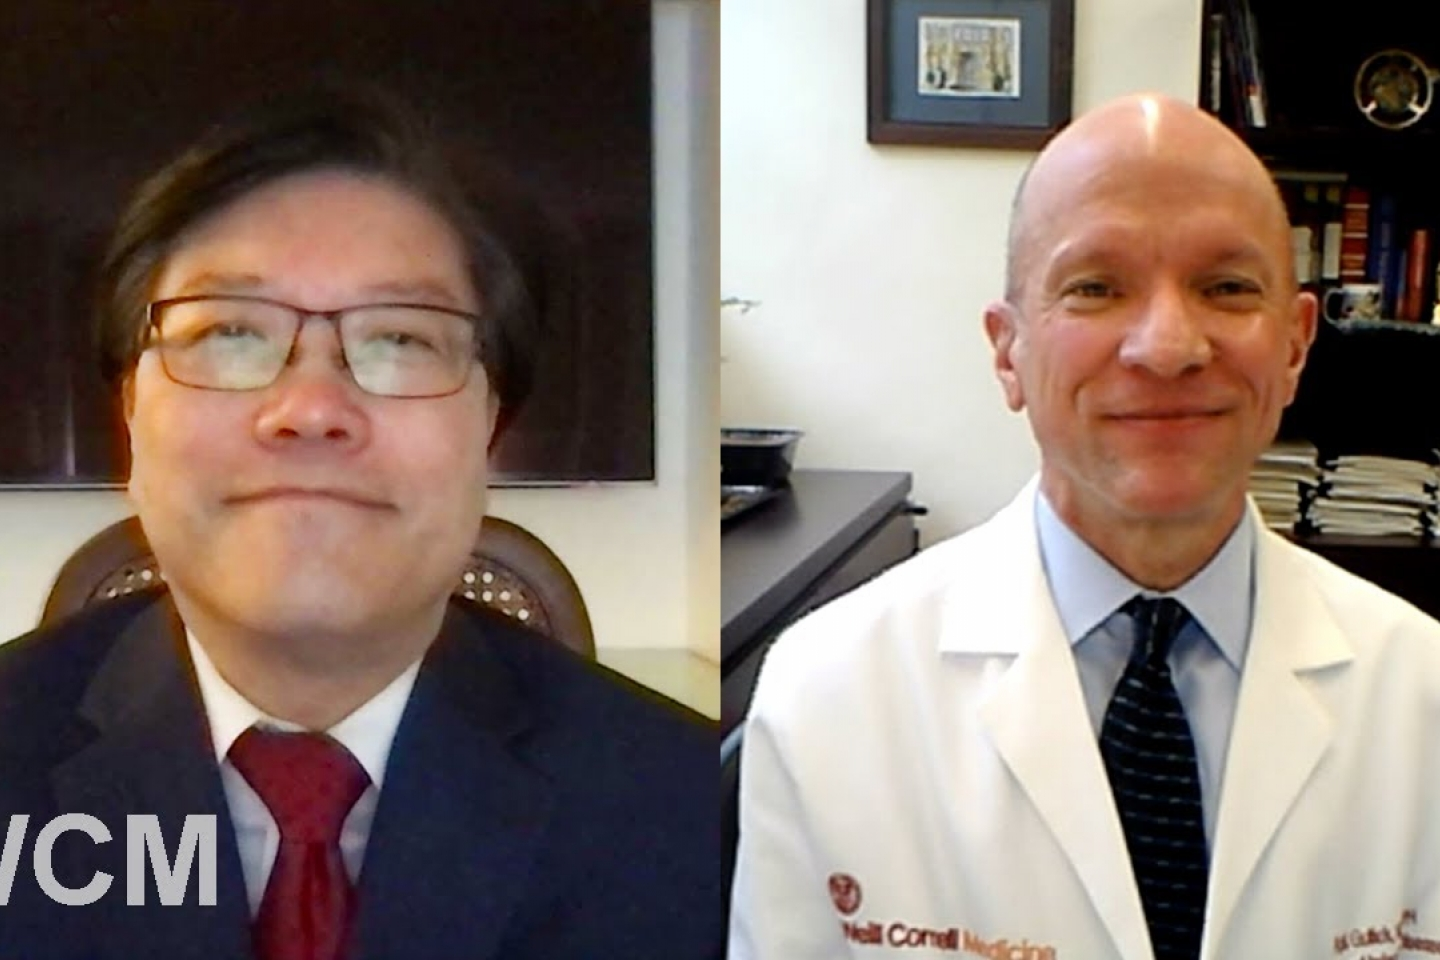 Dean Augustine M.K. Choi and Dr. Roy Gulick